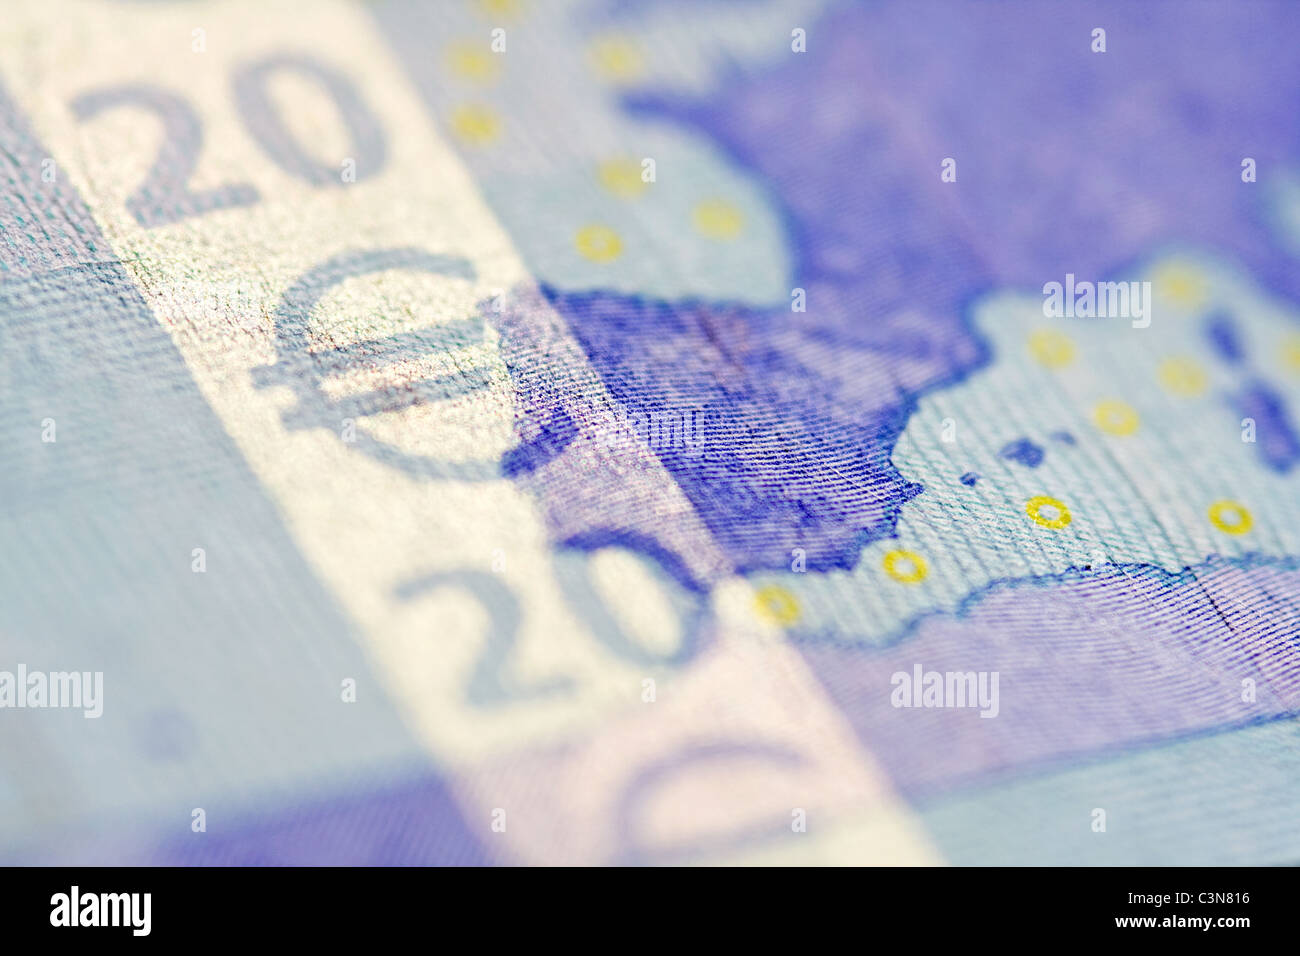 Euro currency of the eurozone - Stock Image